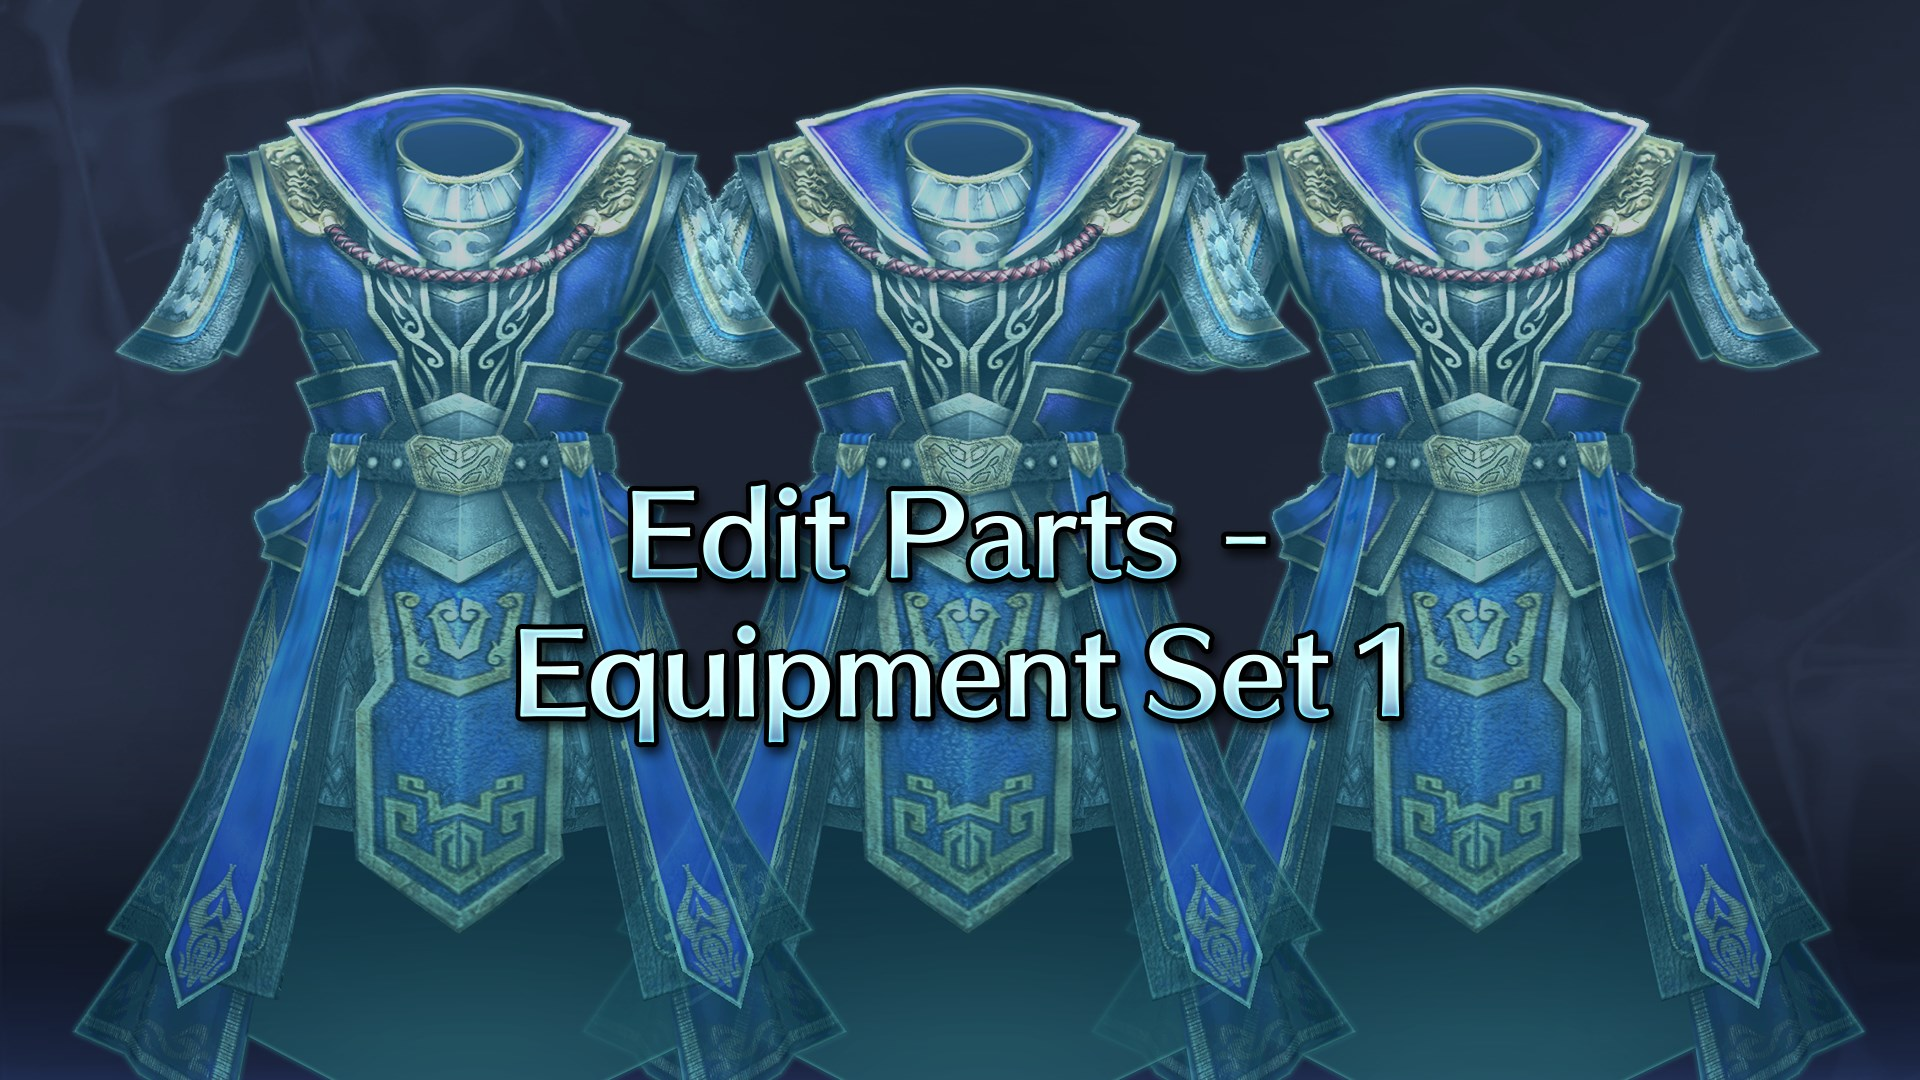 Edit Parts - Equipment Set 1